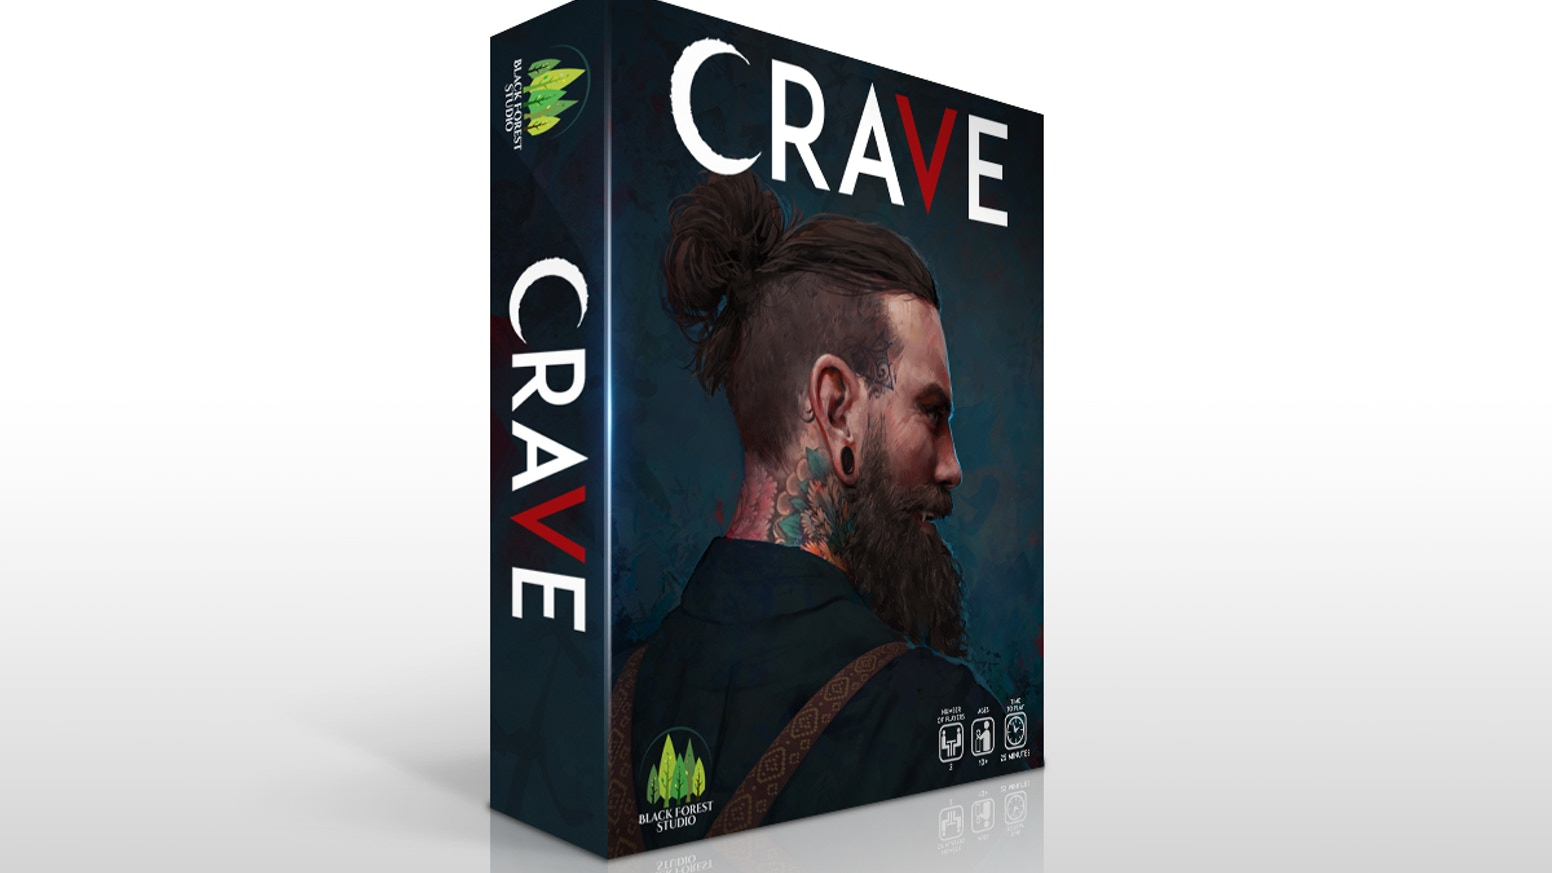 Crave is a dynamic, re-imagined deck builder in a modern fantasy setting, featuring vampires and other enchanted creatures.